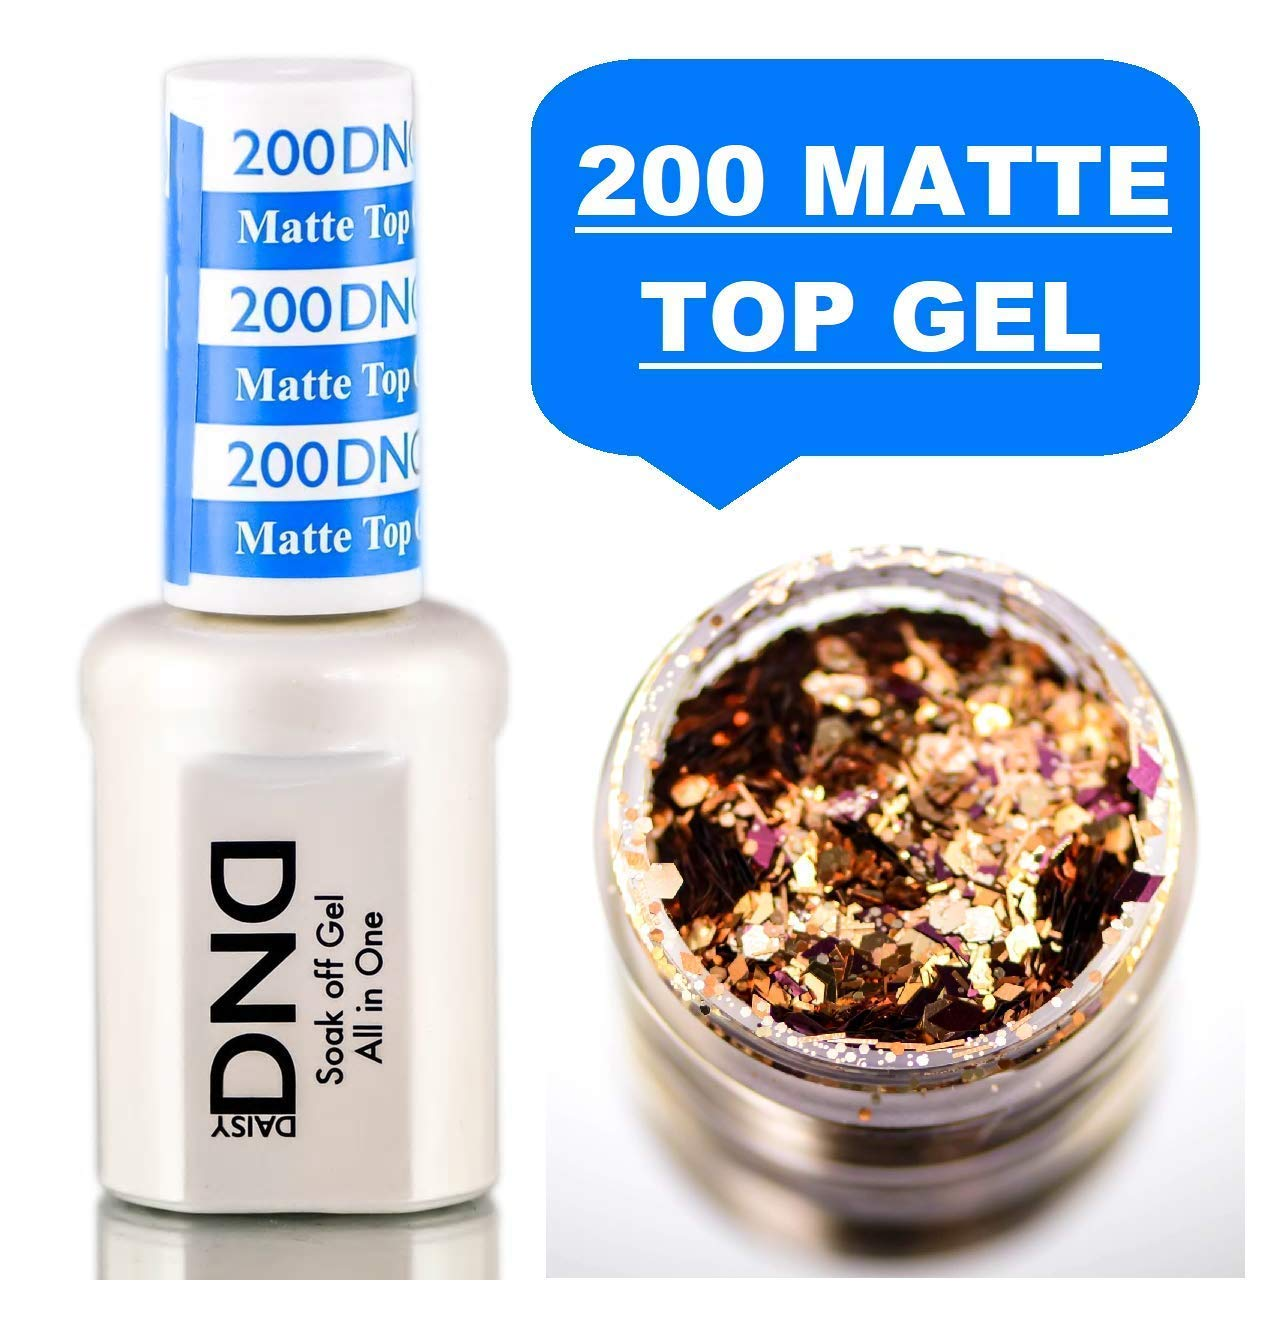 Daisy DND 200 MATTE TOP GEL, Soak off Gel NAIL All In One Daisy Top Coat for Nails (with bonus side Glitter) Made in USA (200 MATTE TOP COAT) by DND Daisy